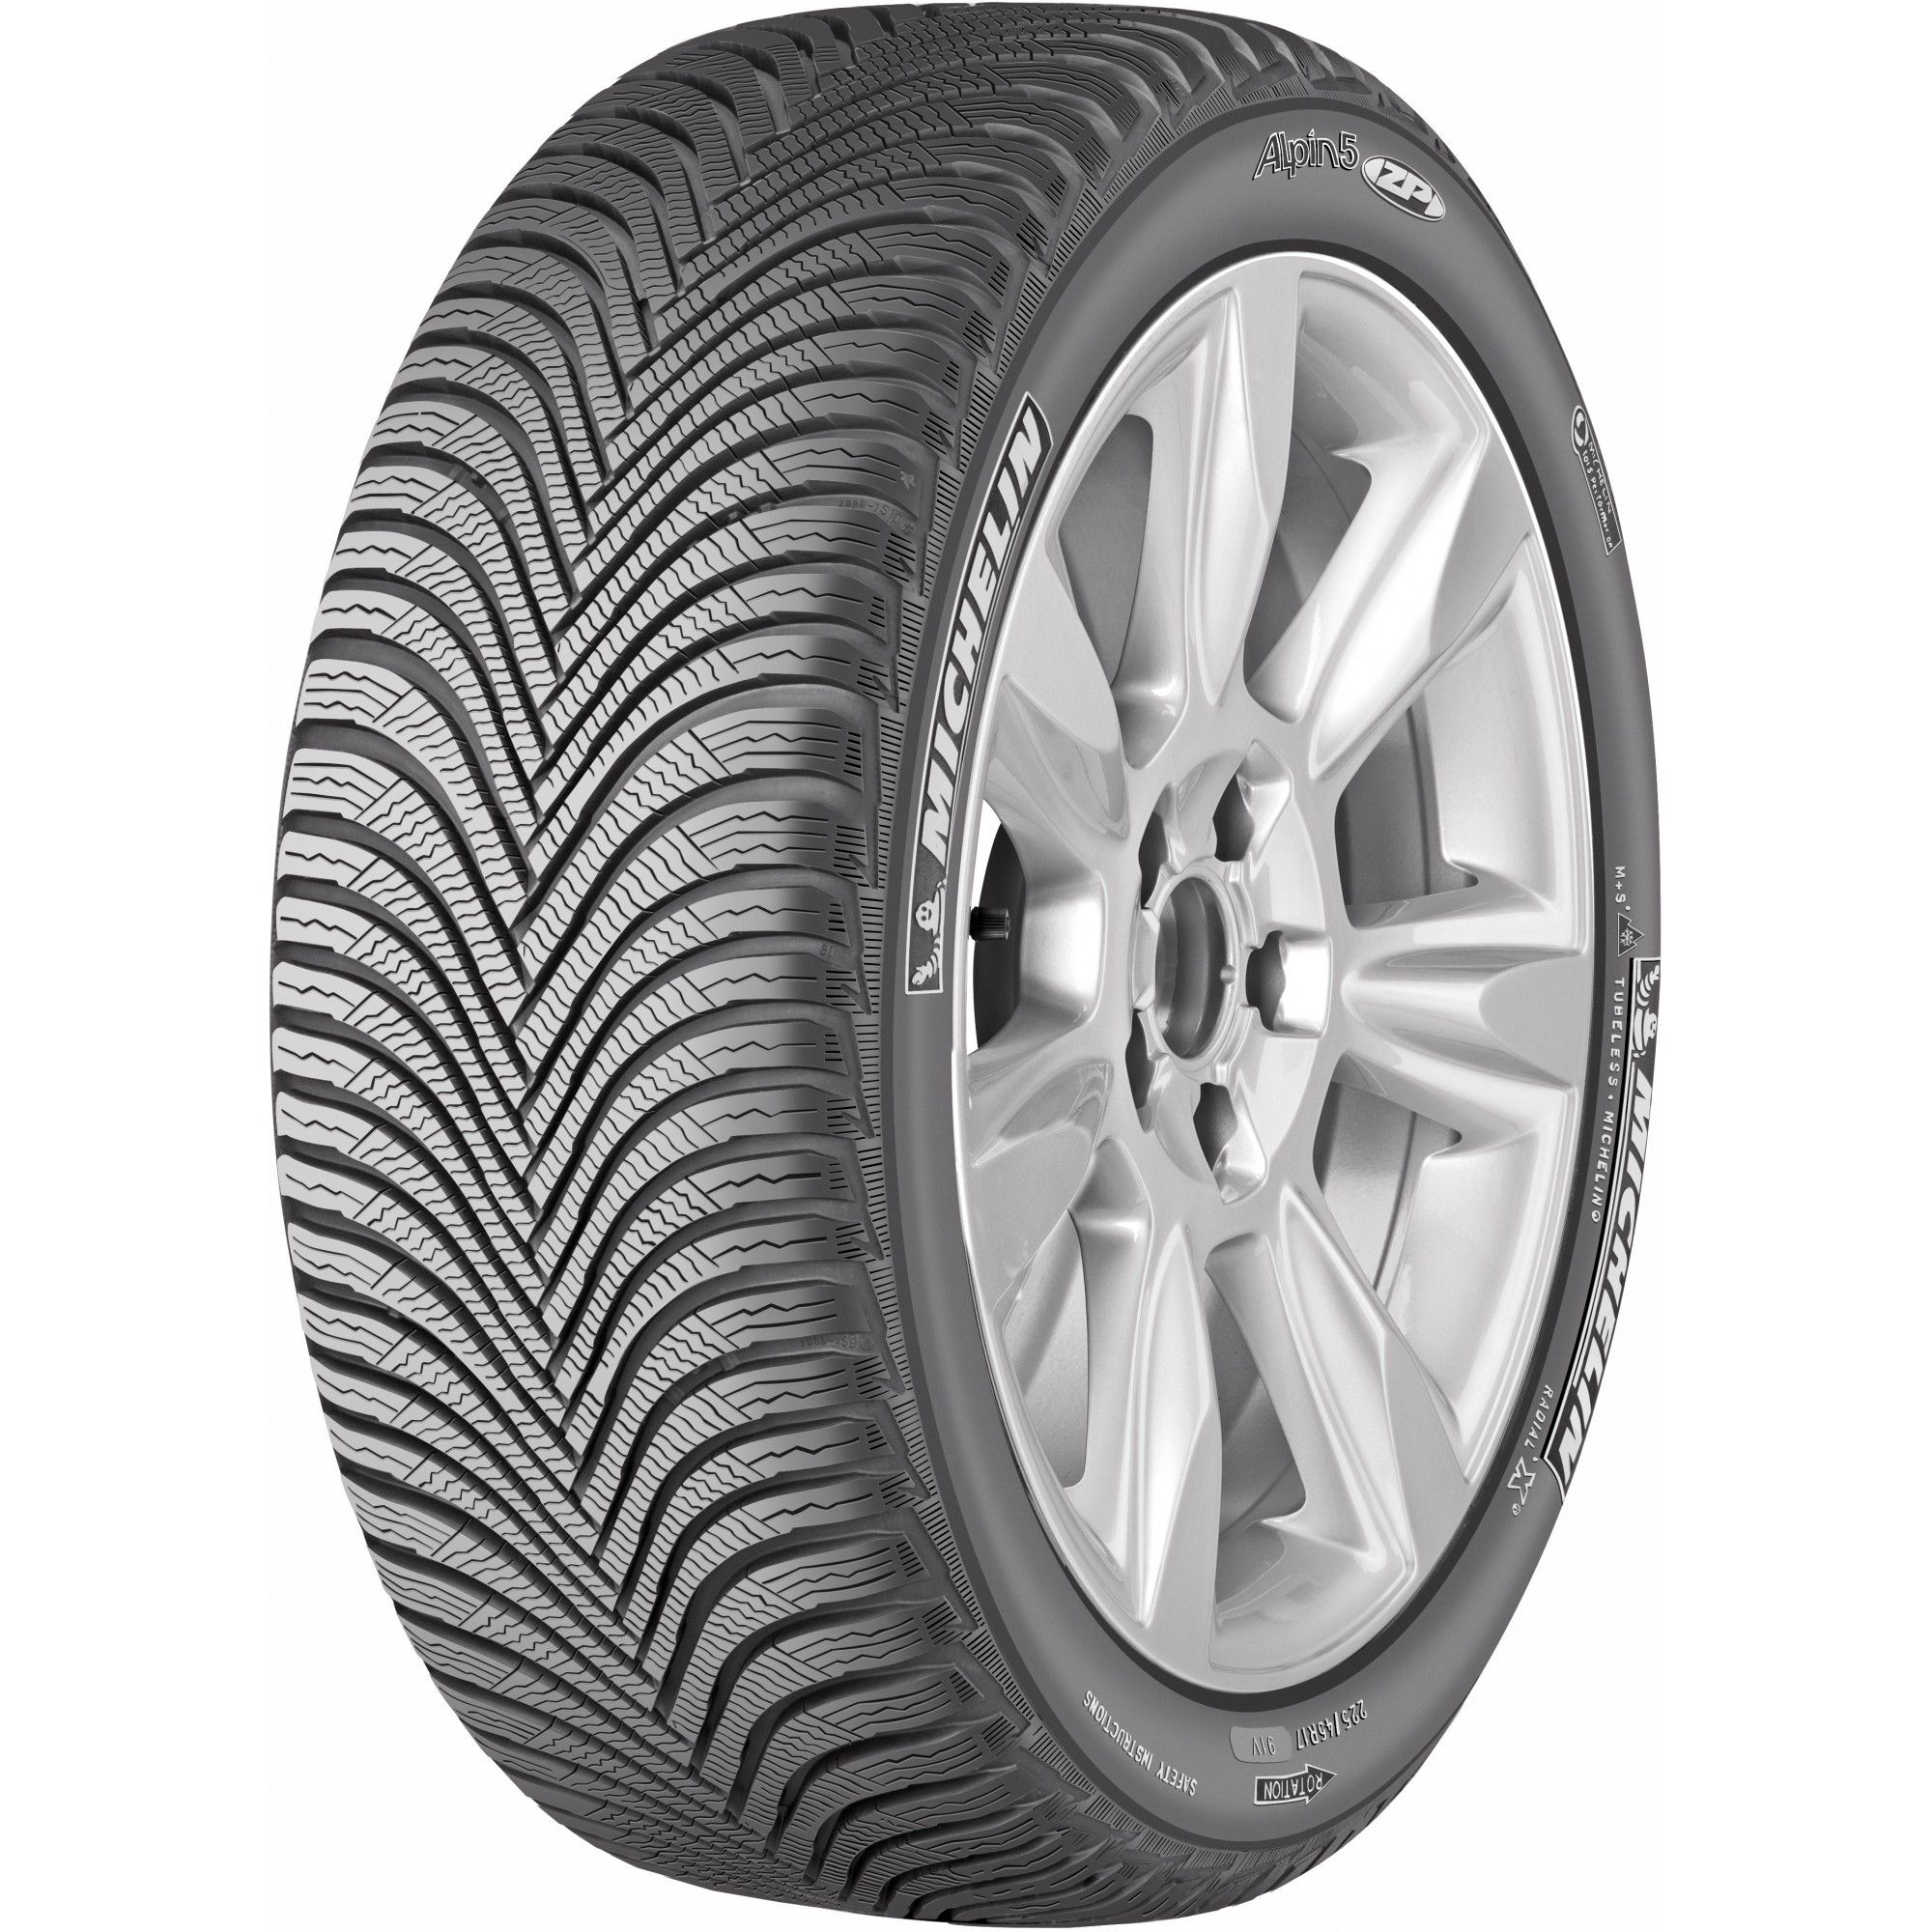 Anvelope Michelin Alpin 5 205/55R16 91H Iarna imagine